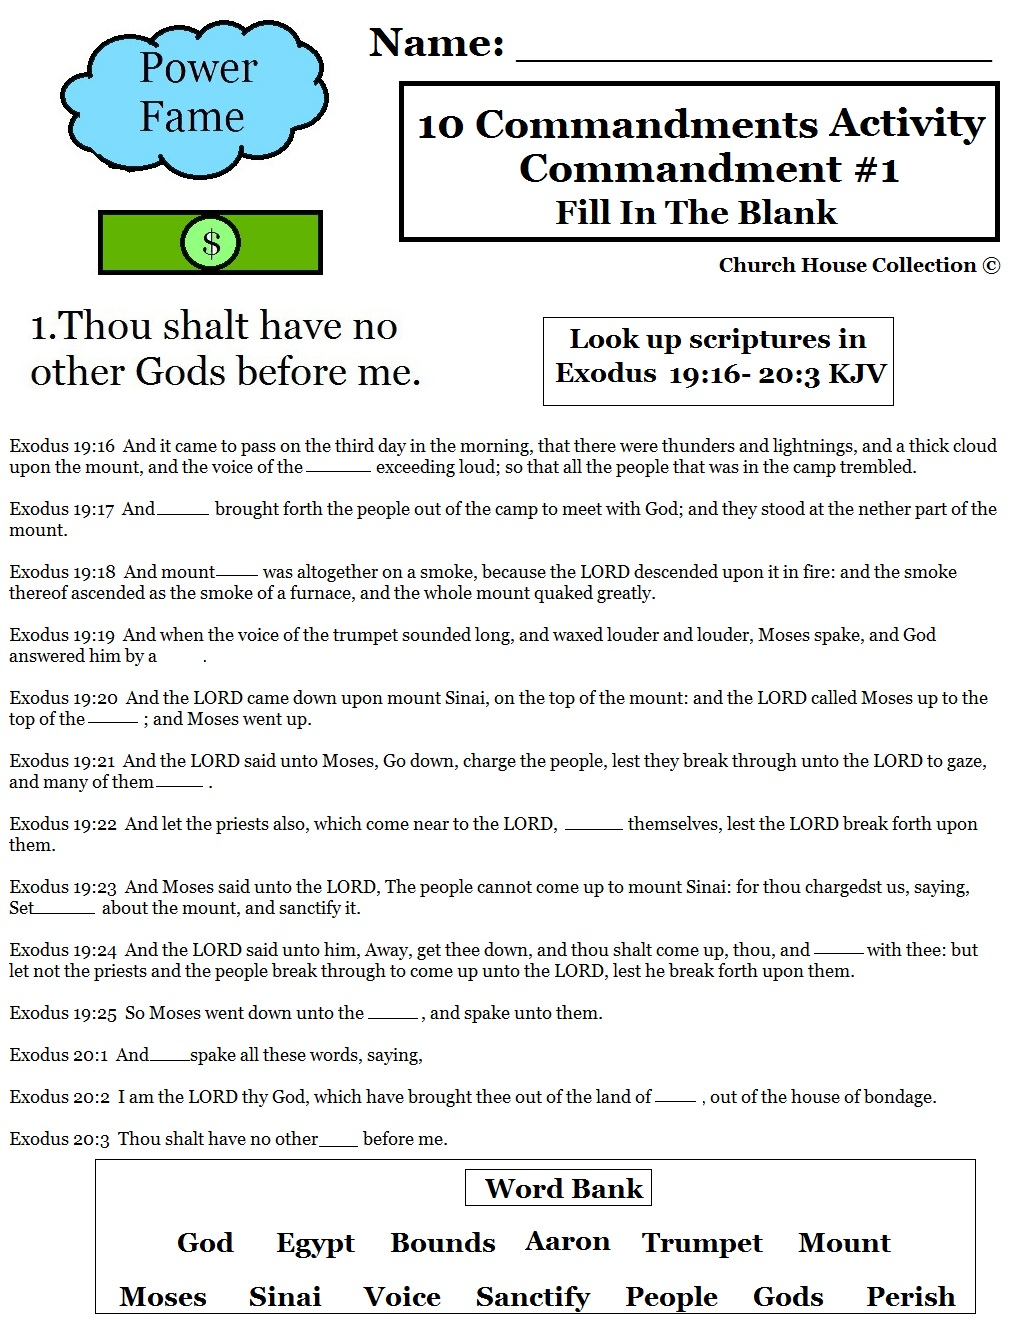 Worksheets 10 Commandments Worksheet ten commandments worksheet delibertad commandment worksheets delibertad